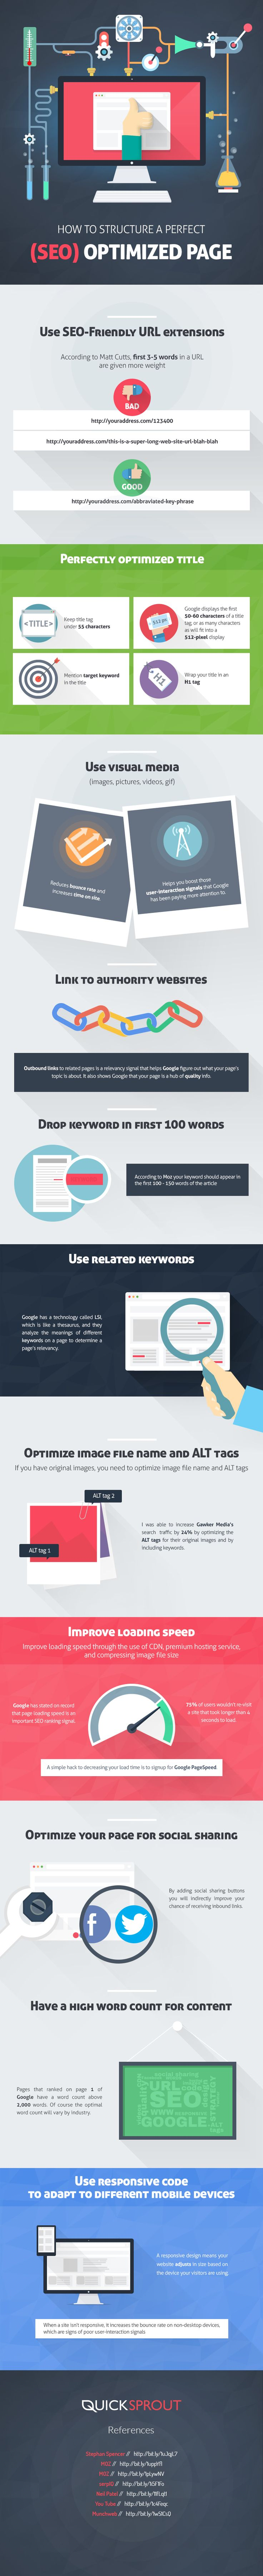 How to Structure a Perfect SEO Optimized Page [INFOGRAPHIC] #SEO #Optimized